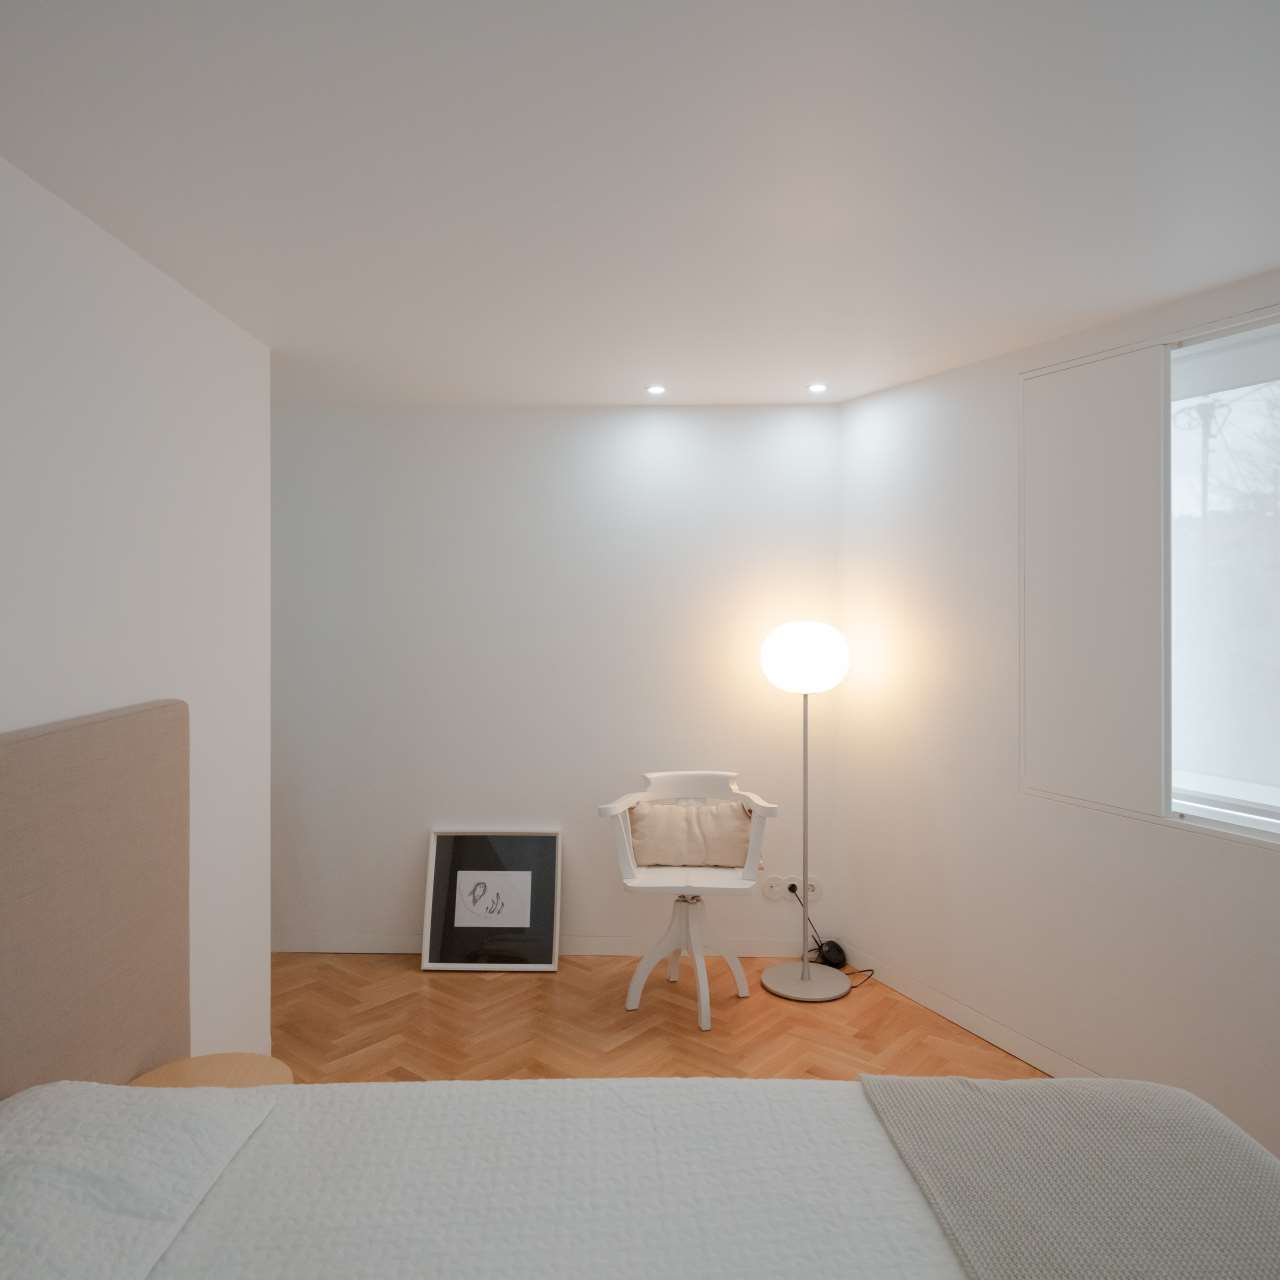 The bedroom is minimalist and neutral, with a floor lamp and a comfy bed